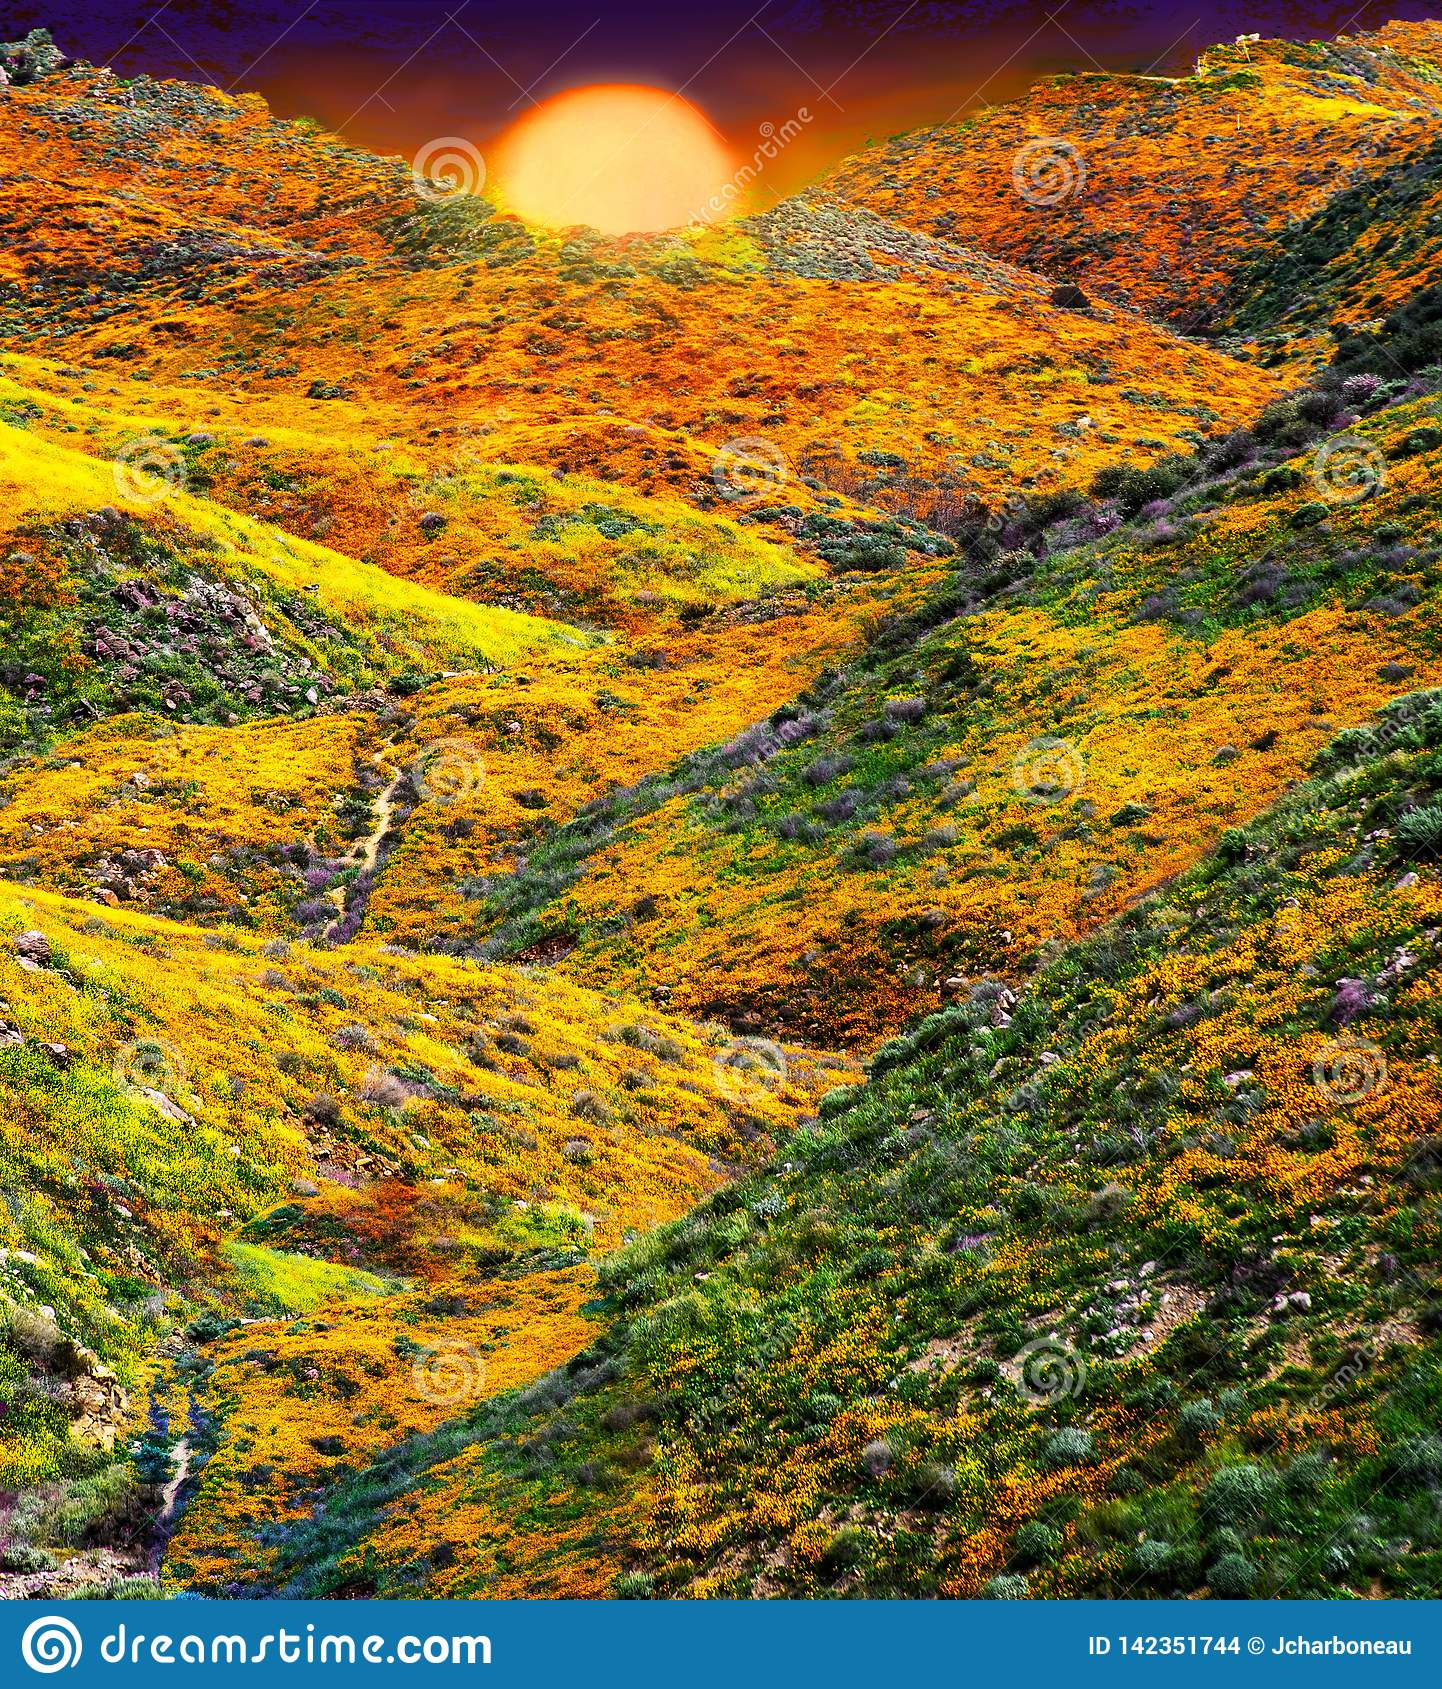 California Poppy fields landscape, sun creasting on the horizen casting a gloden glow over colorful hills and valleys.